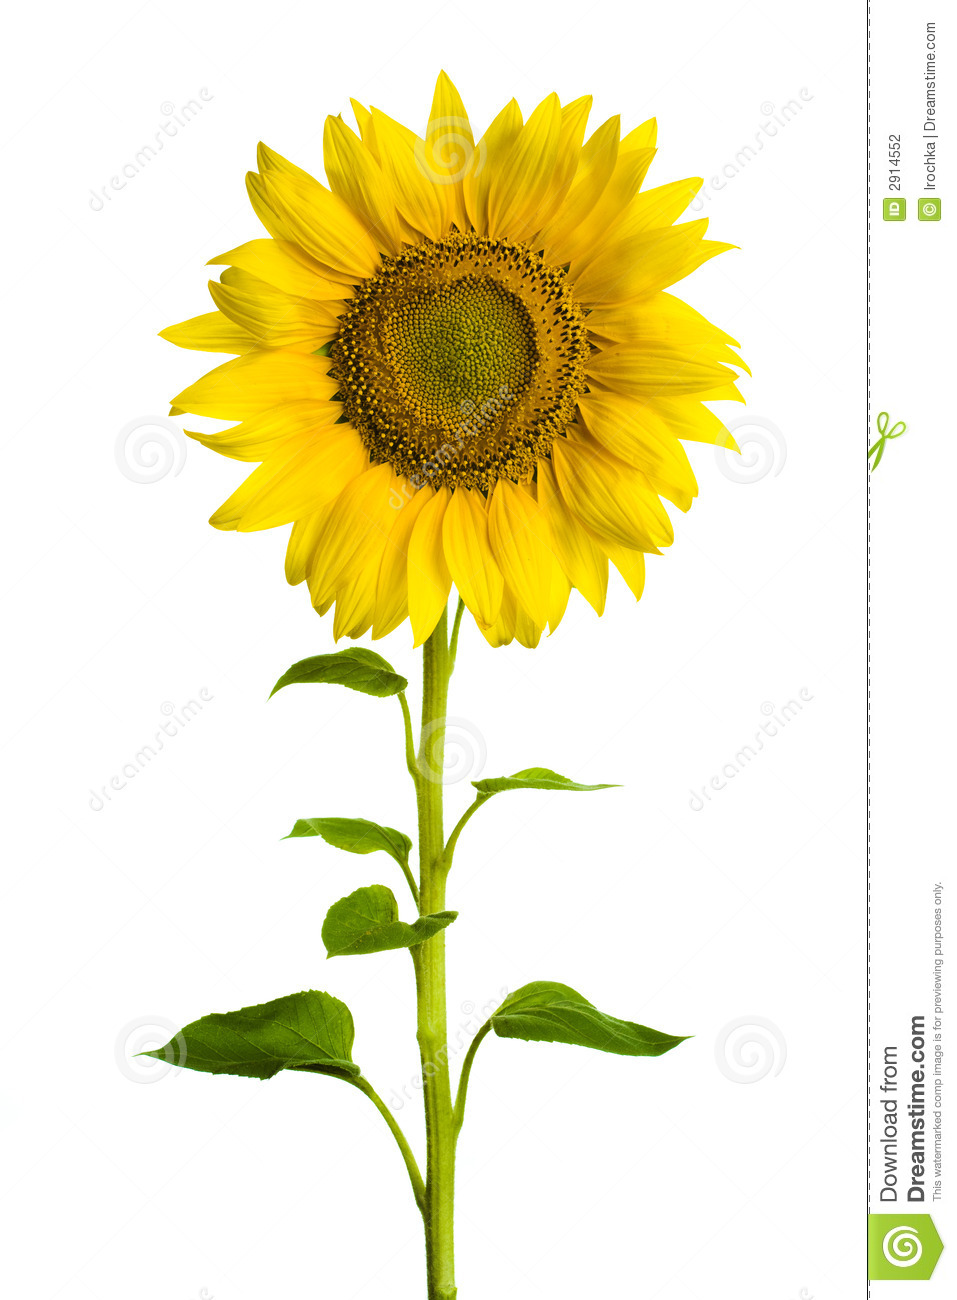 Sunflower Stock Photography - Image: 2914552